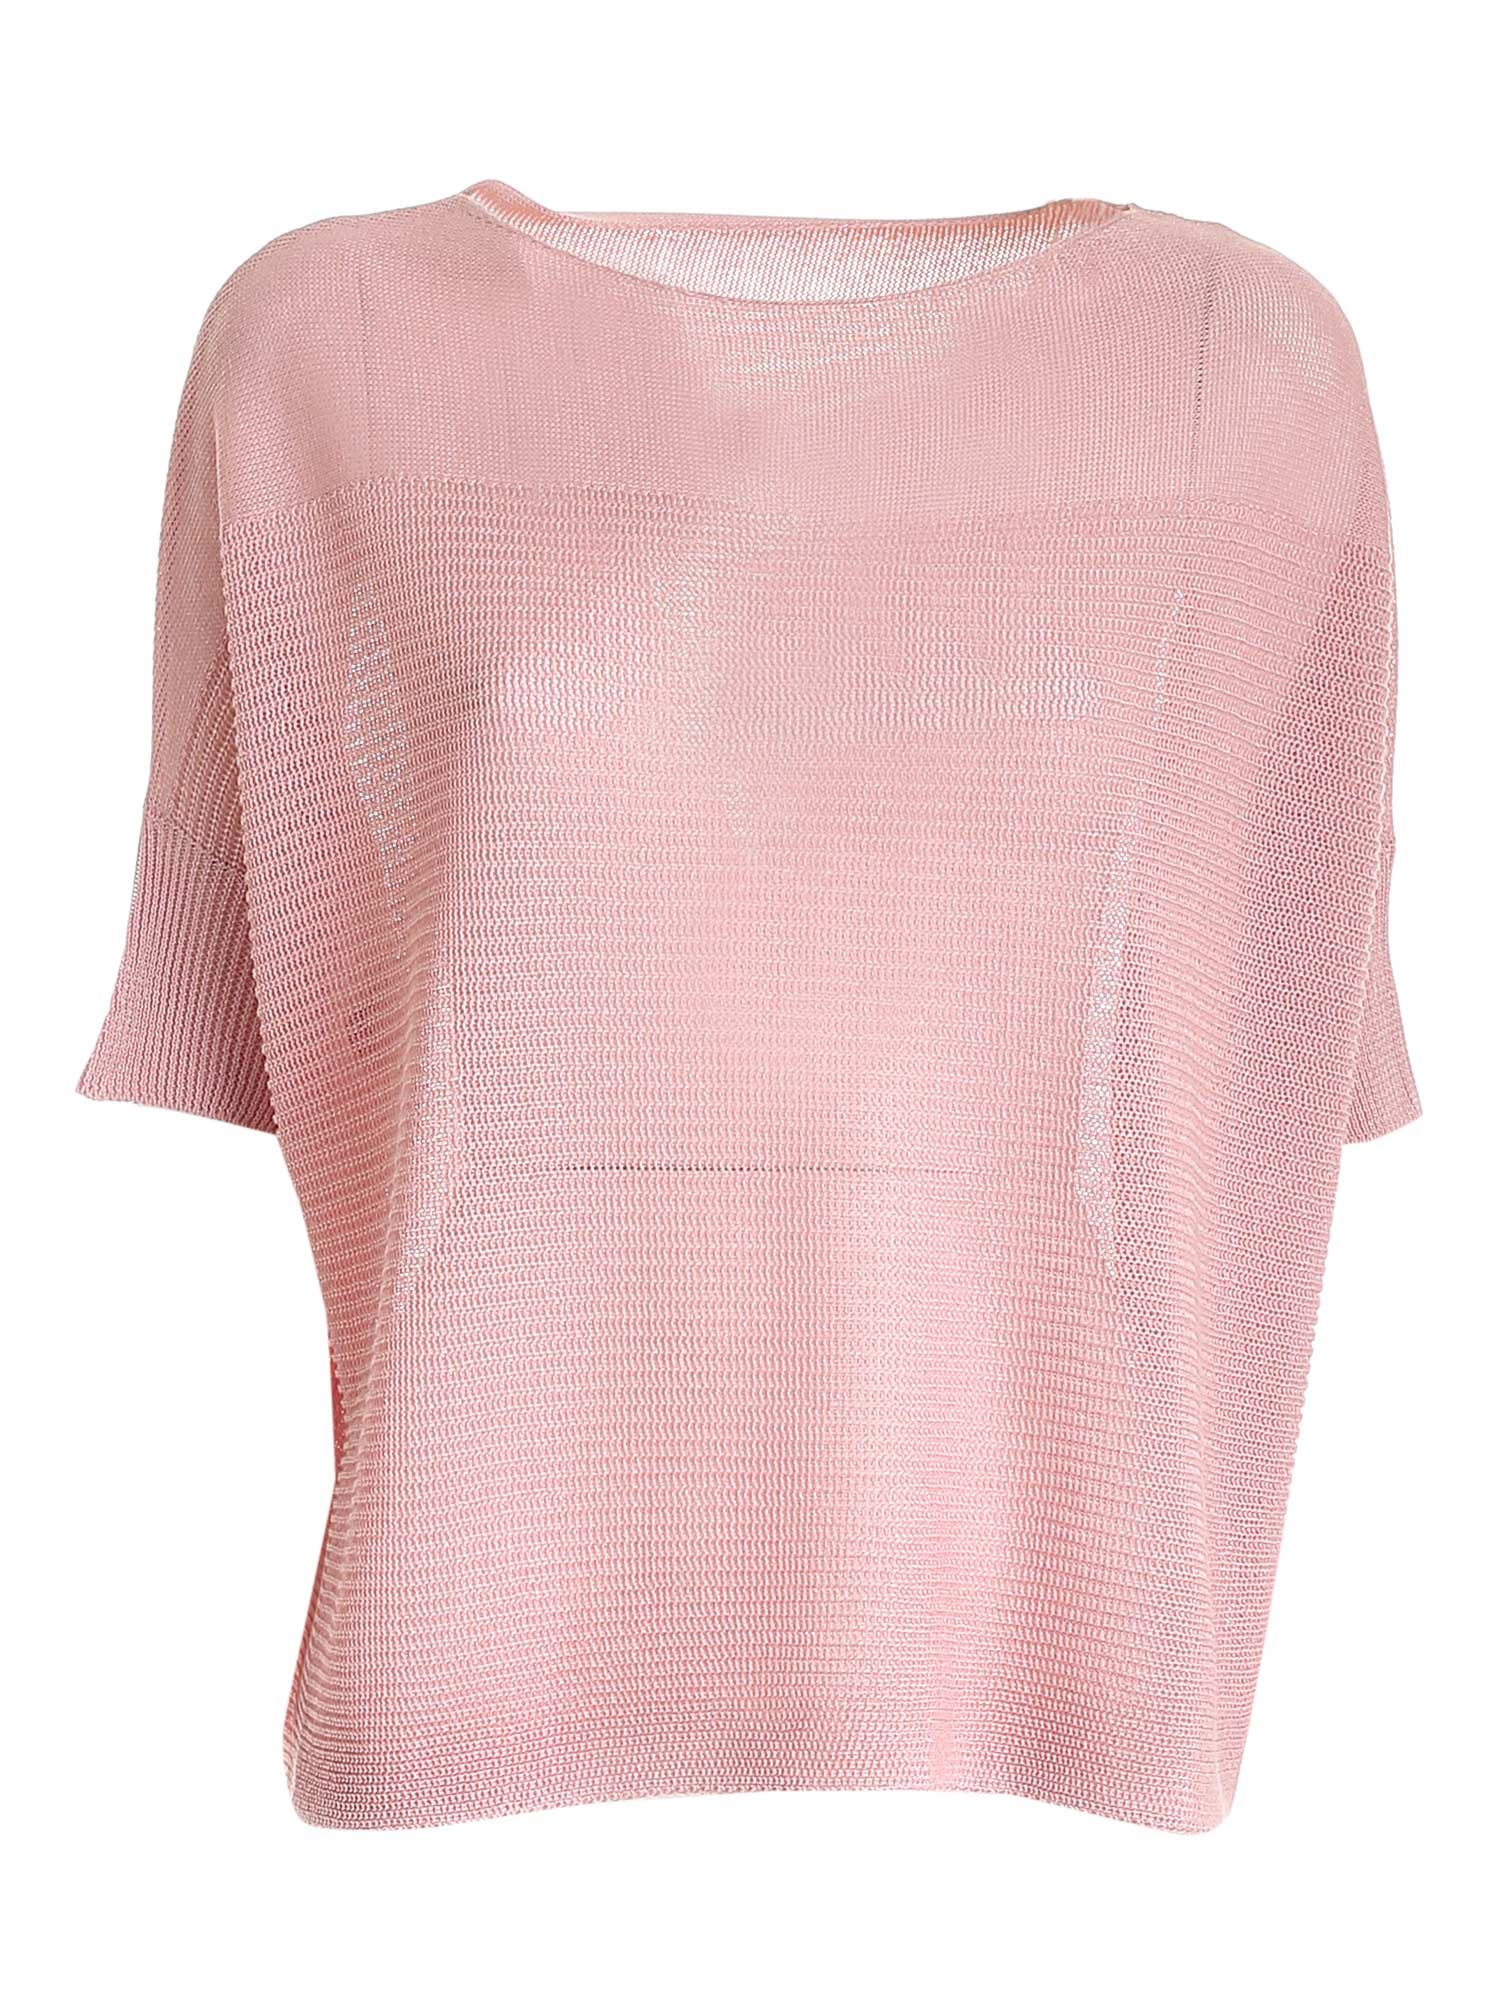 Le Tricot Perugia Sweaters BOXY SWEATER IN PINK